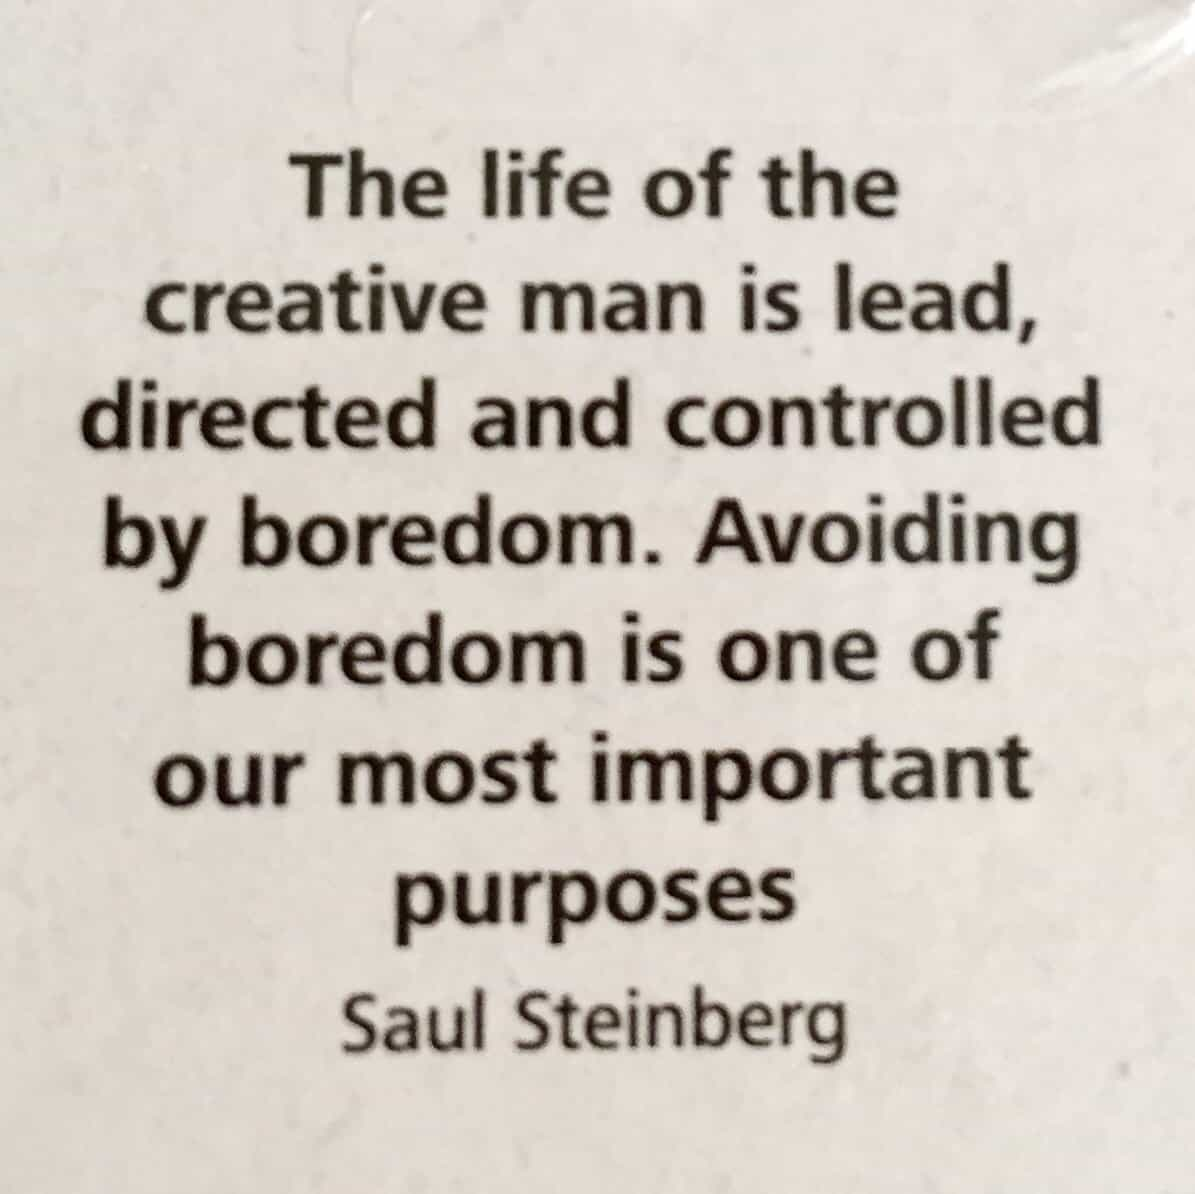 Quote from Saul Steinberg